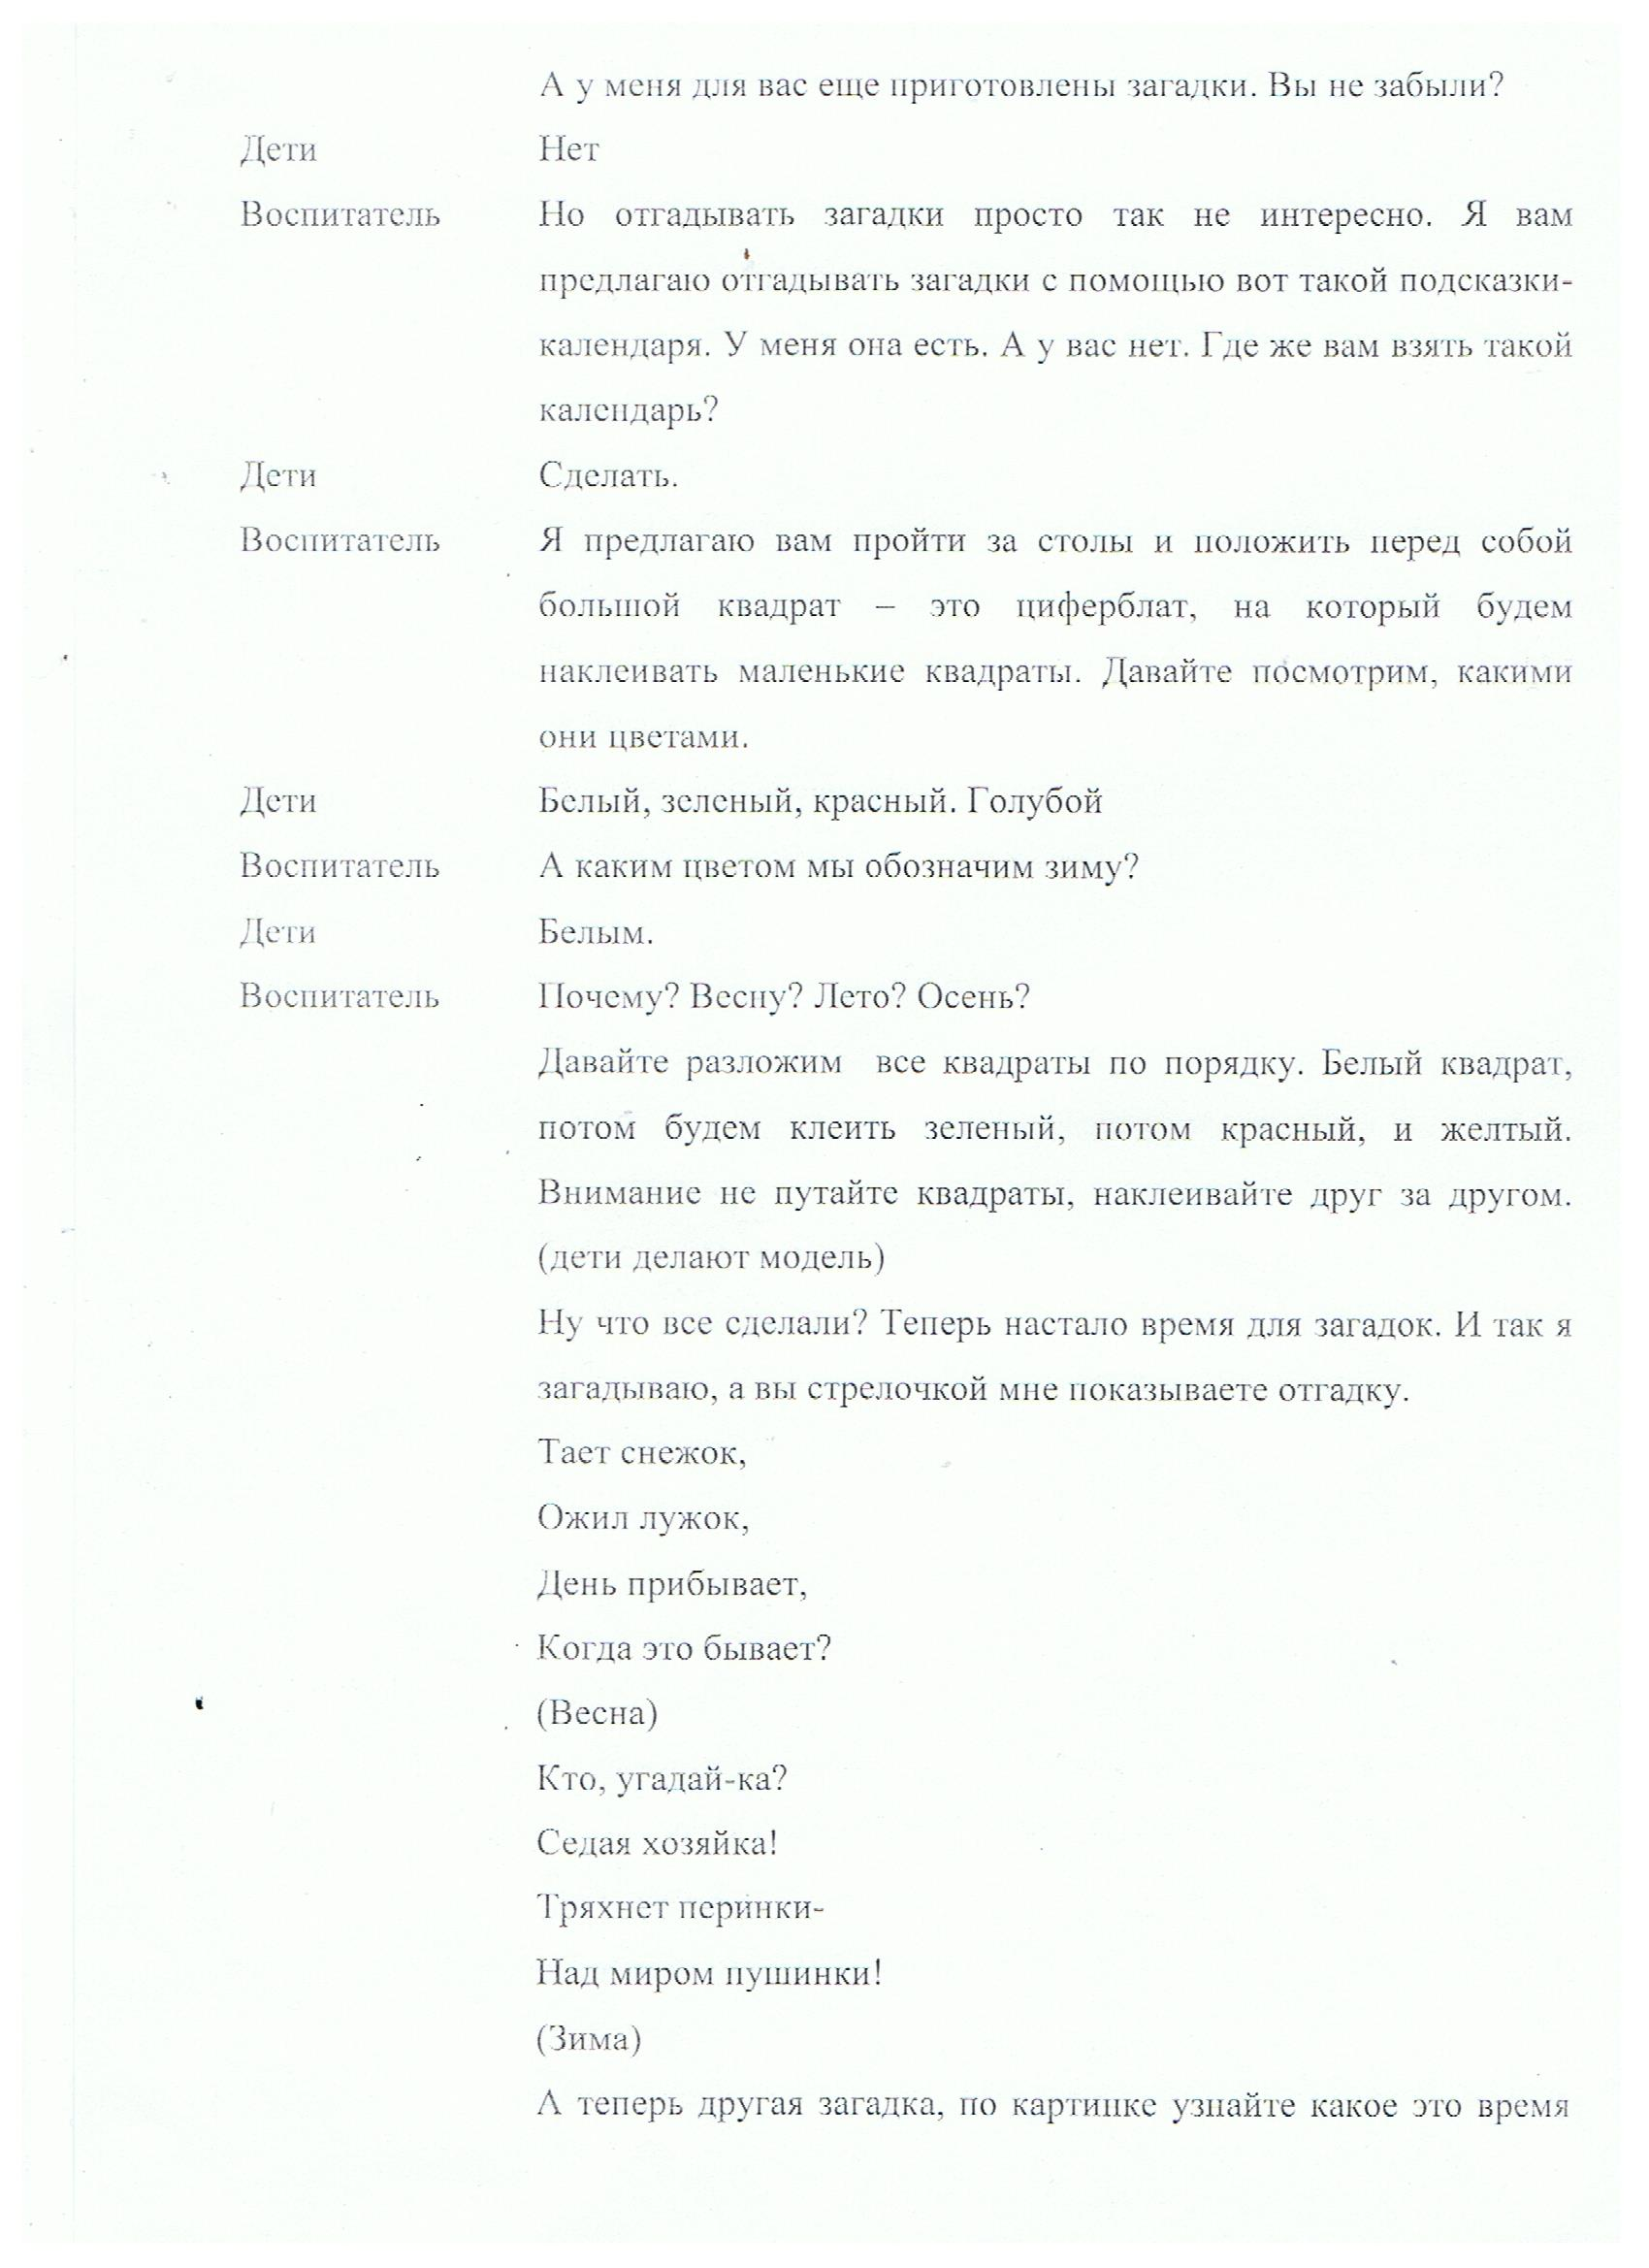 C:\Users\user\Documents\Scanned Documents\бабаева 1\Рисунок (4).jpg